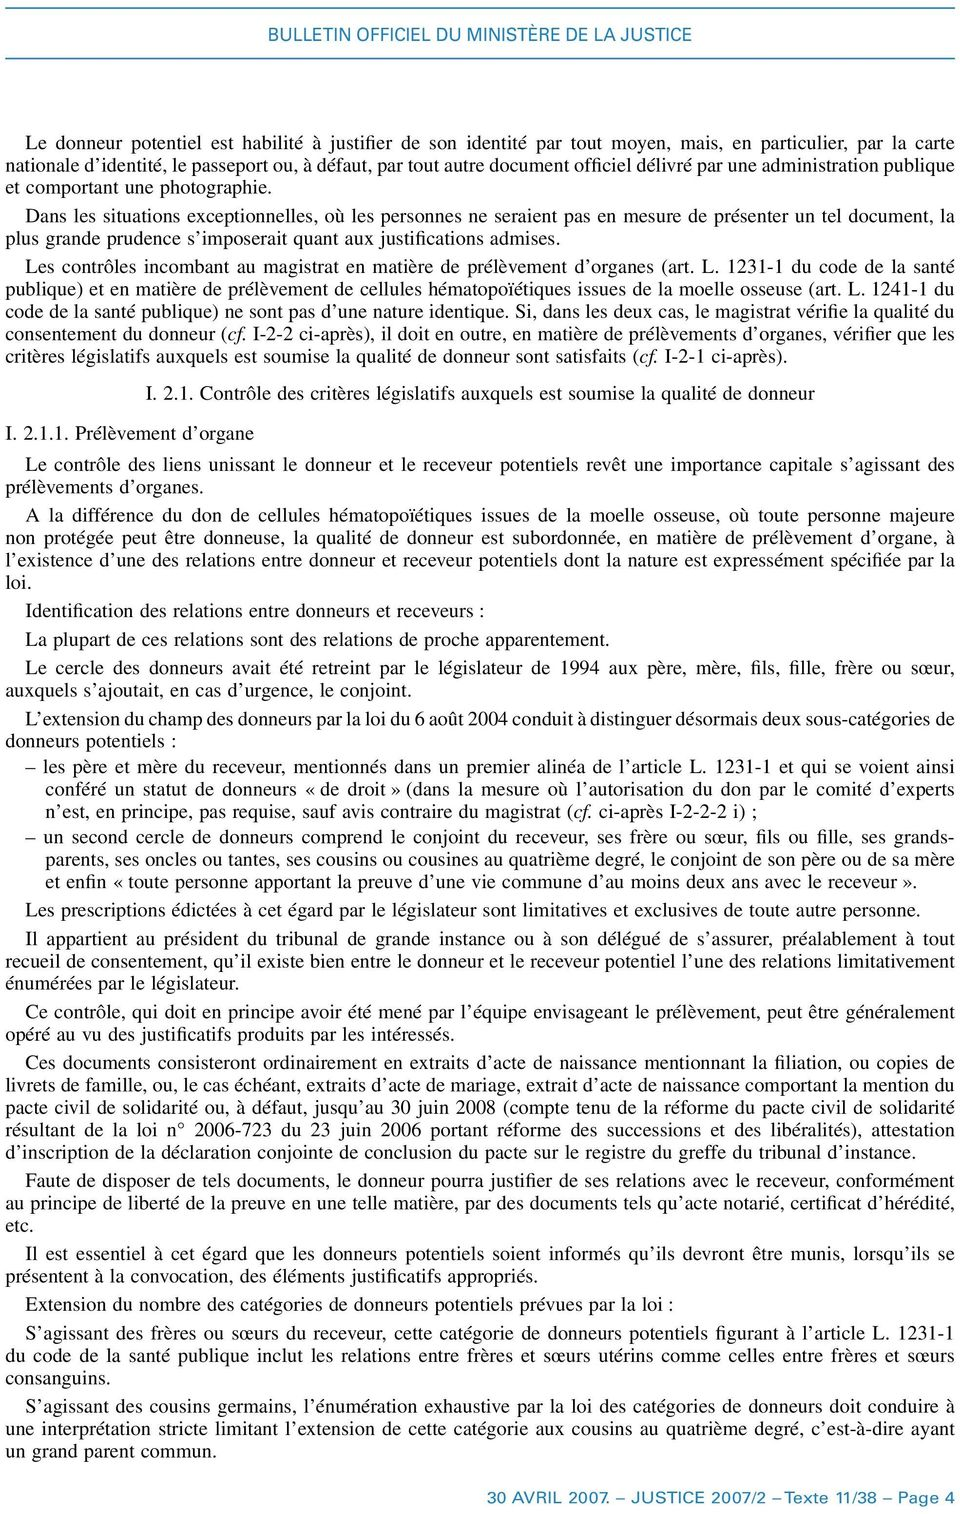 Dans les situations exceptionnelles, où les personnes ne seraient pas en mesure de présenter un tel document, la plus grande prudence s imposerait quant aux justifications admises.